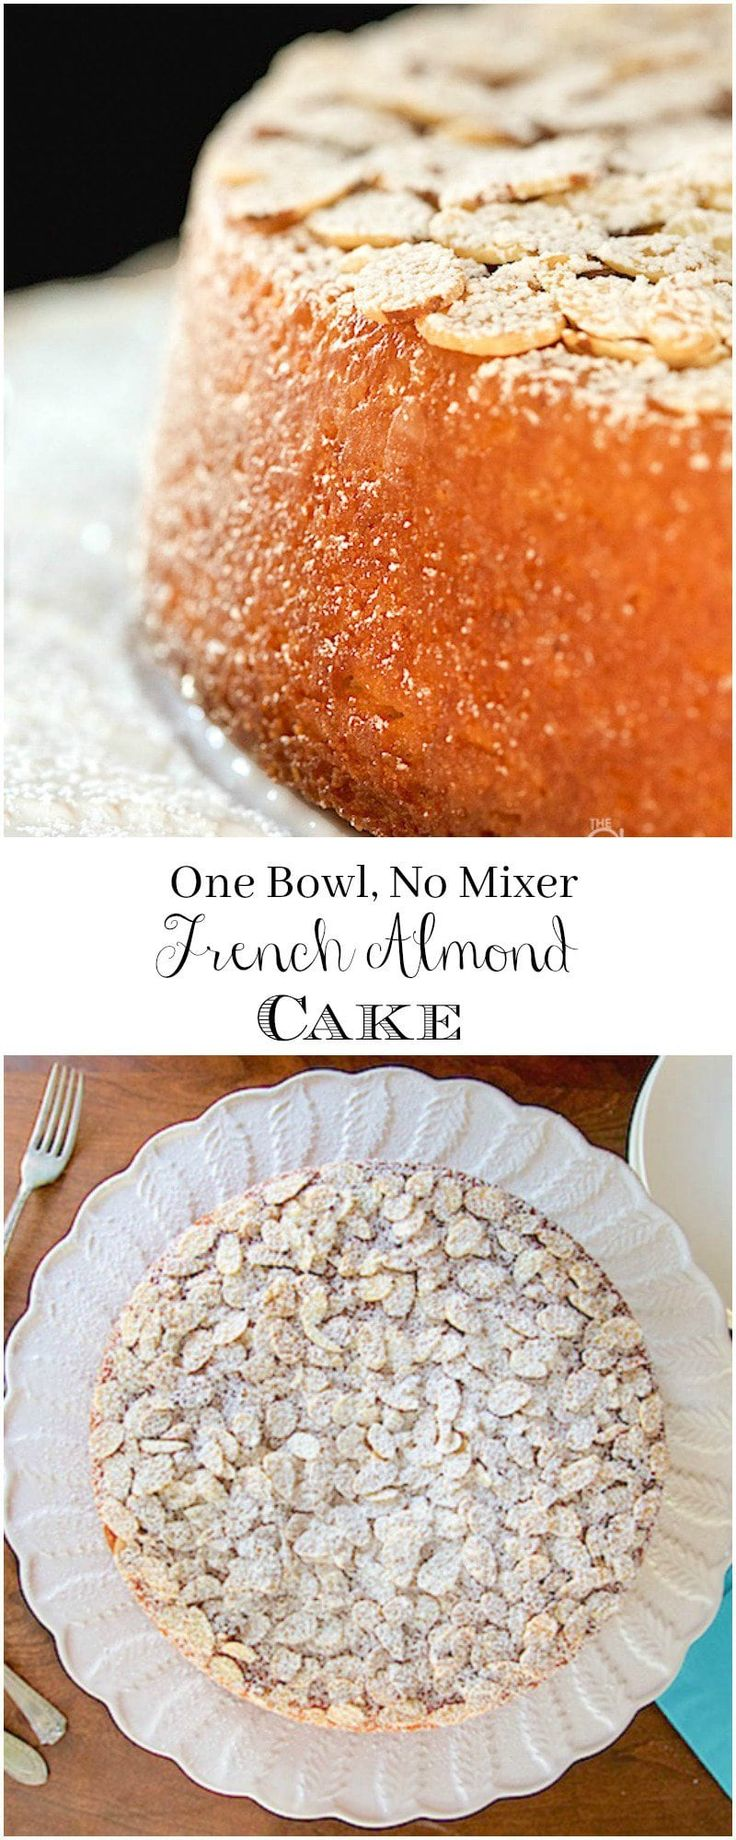 This French Almond Cake is incredibly delicious and incredibly easy. One-bowl, no-mixer, just-a-few-minutes-to-throw together!   via @cafesucrefarine